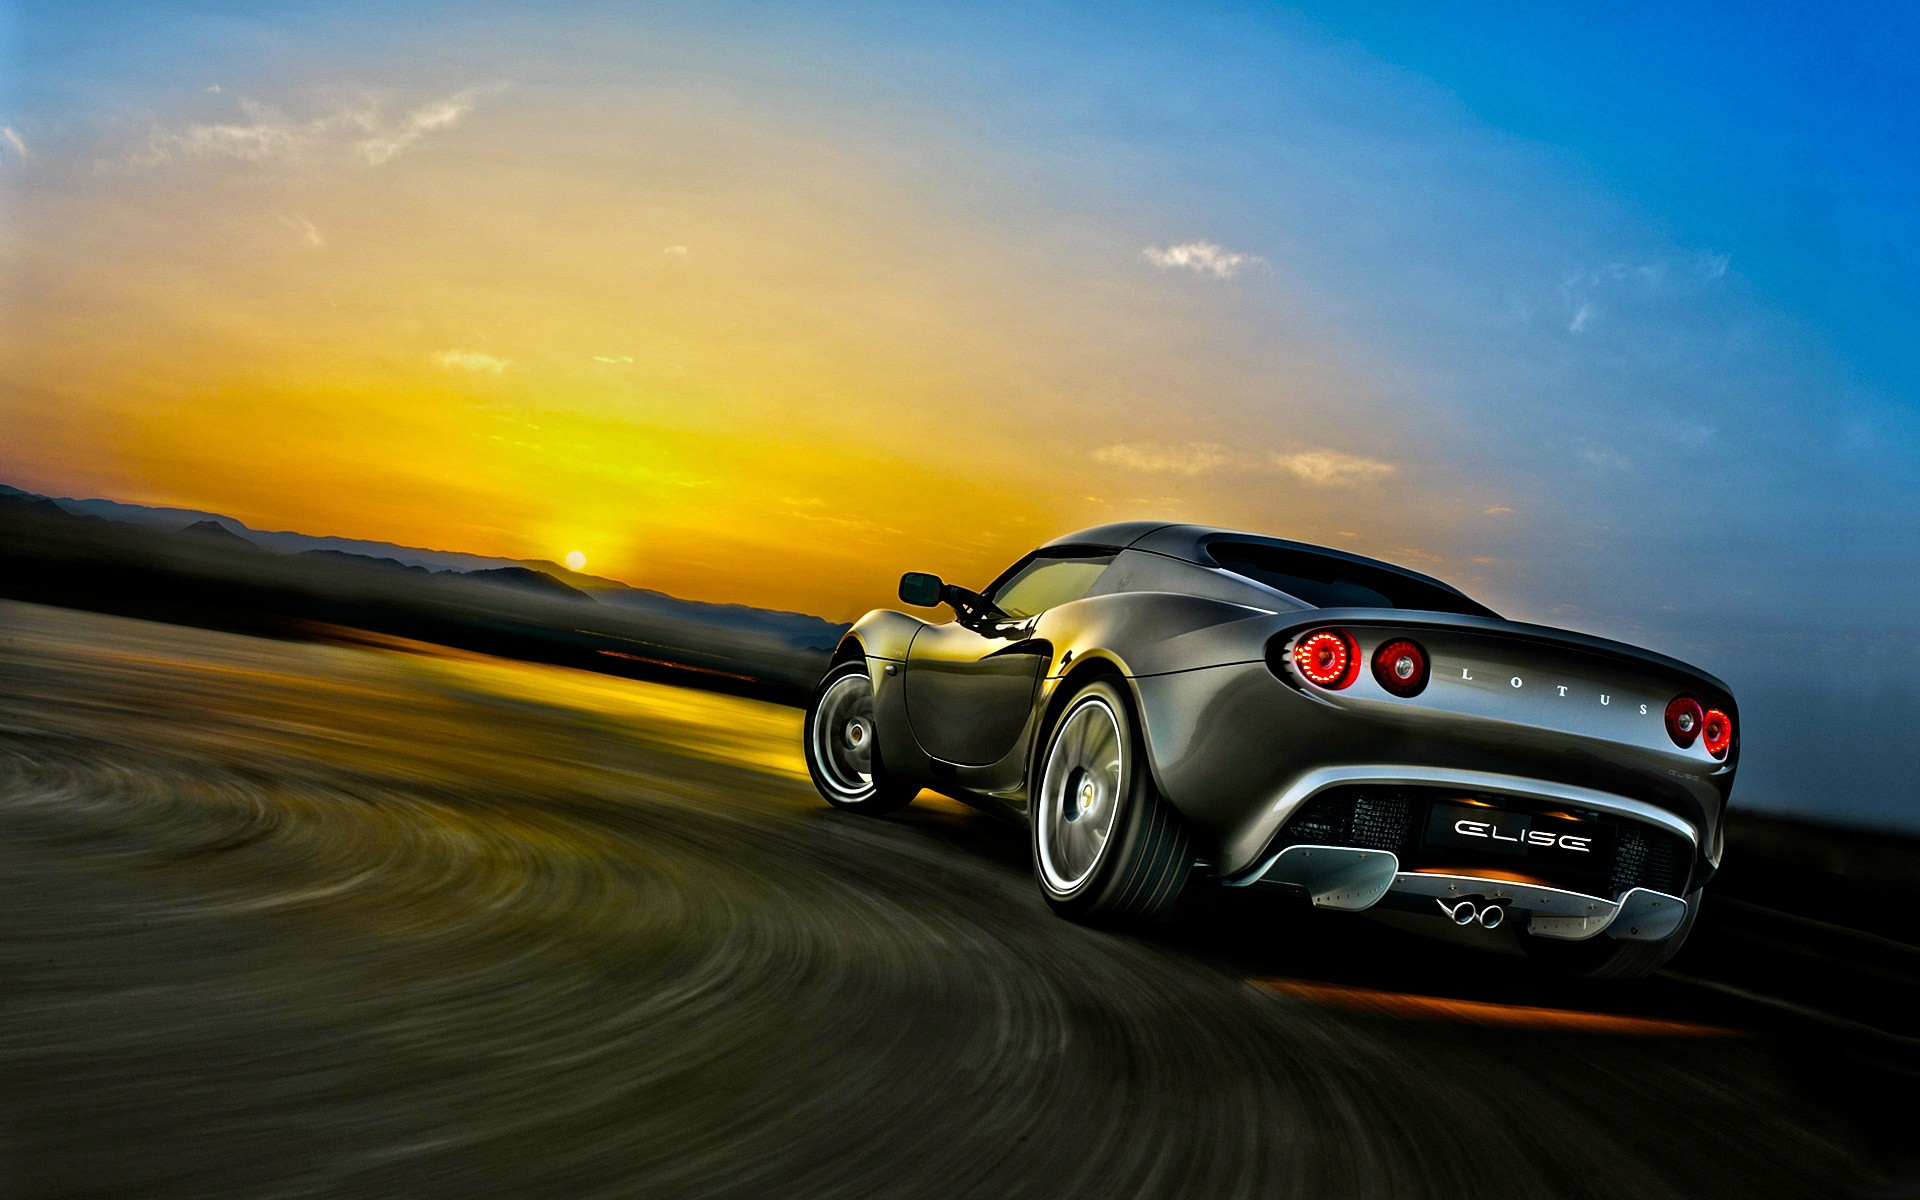 Elise Sports Car 11 Wide Car Wallpaper